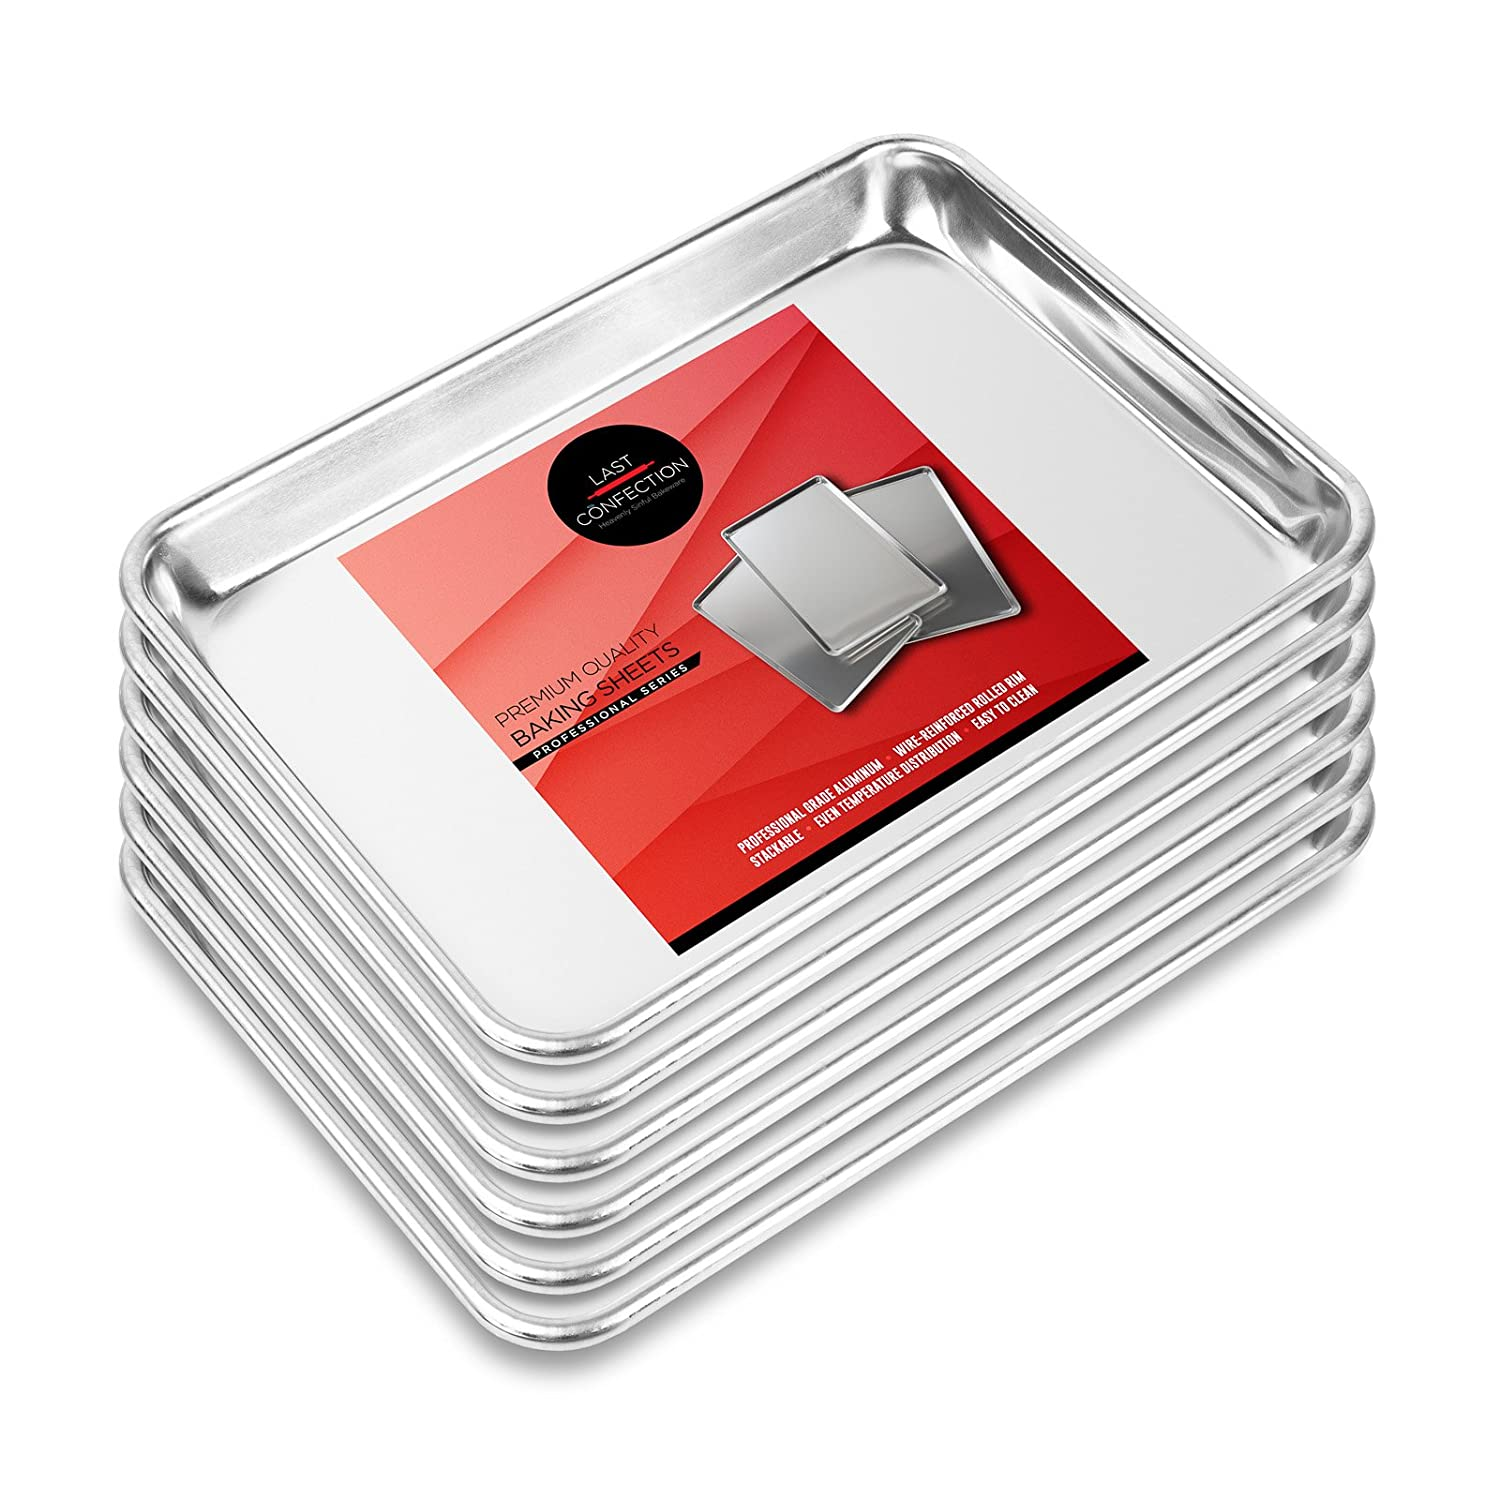 Last Confection 6 Cookie Baking Sheets 9 x 13 - Small Rimmed Aluminum Jelly Roll Trays - Quarter Sheet Pans